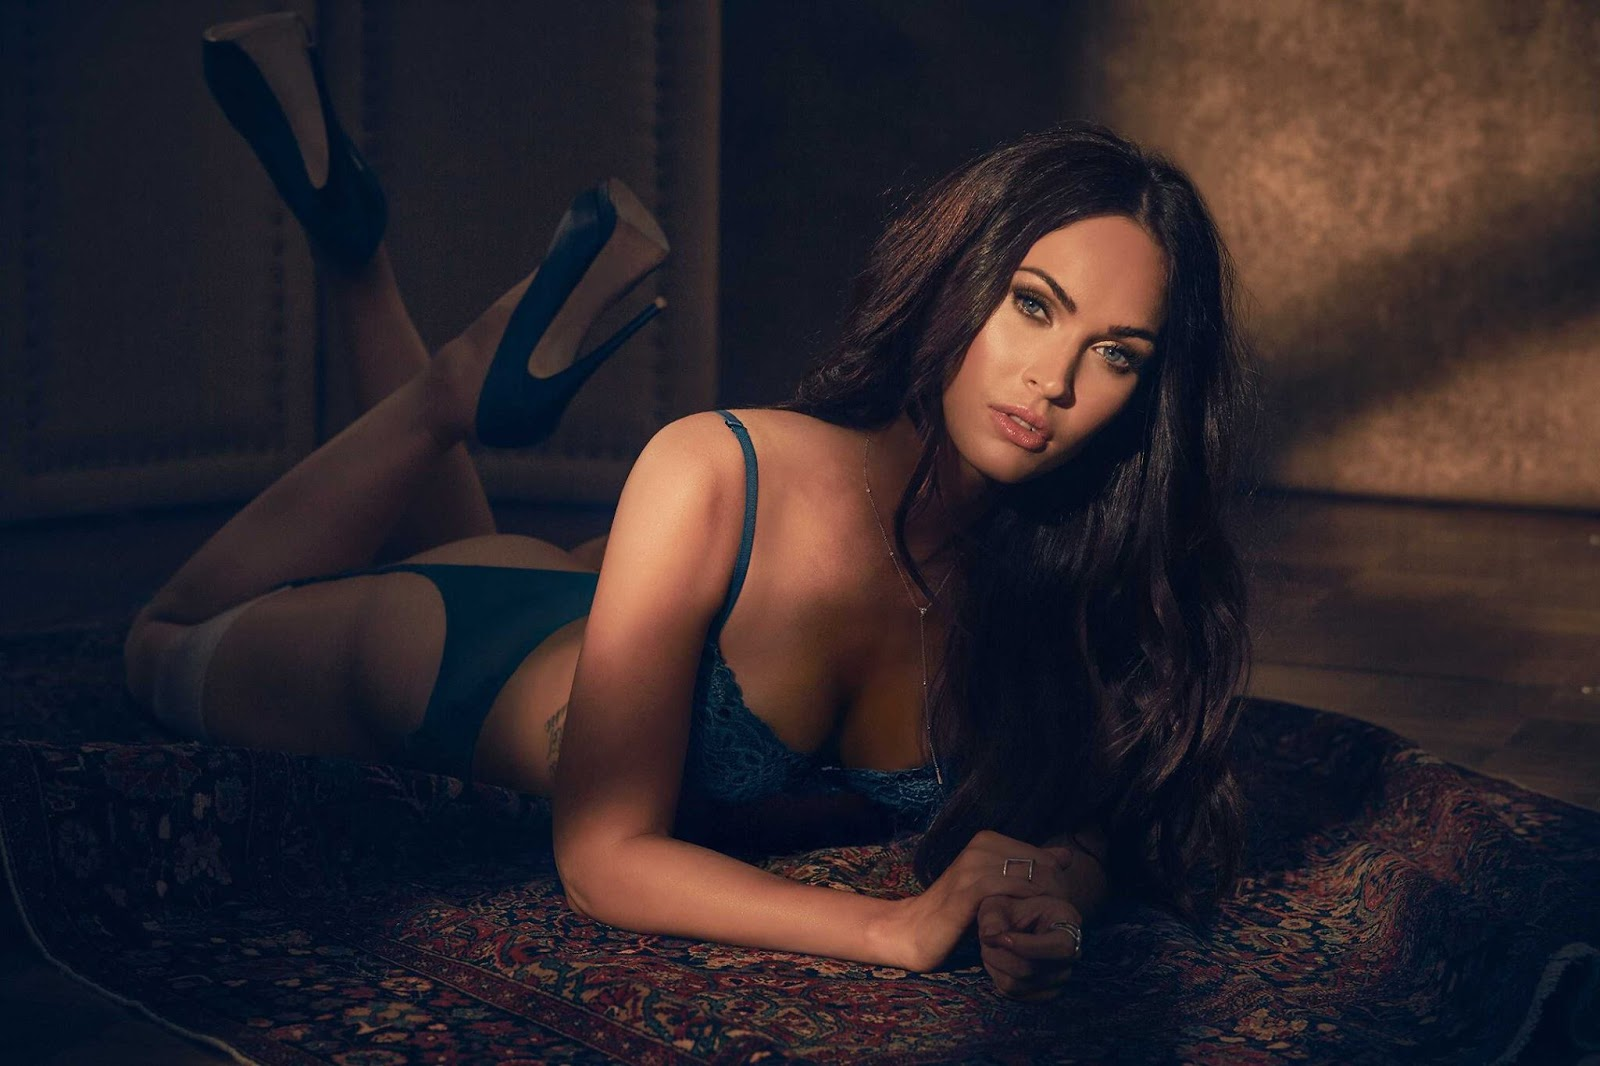 Fredericks of Hollywood Fall/Winter 2017 Lingerie Campaign featuring Megan Fox